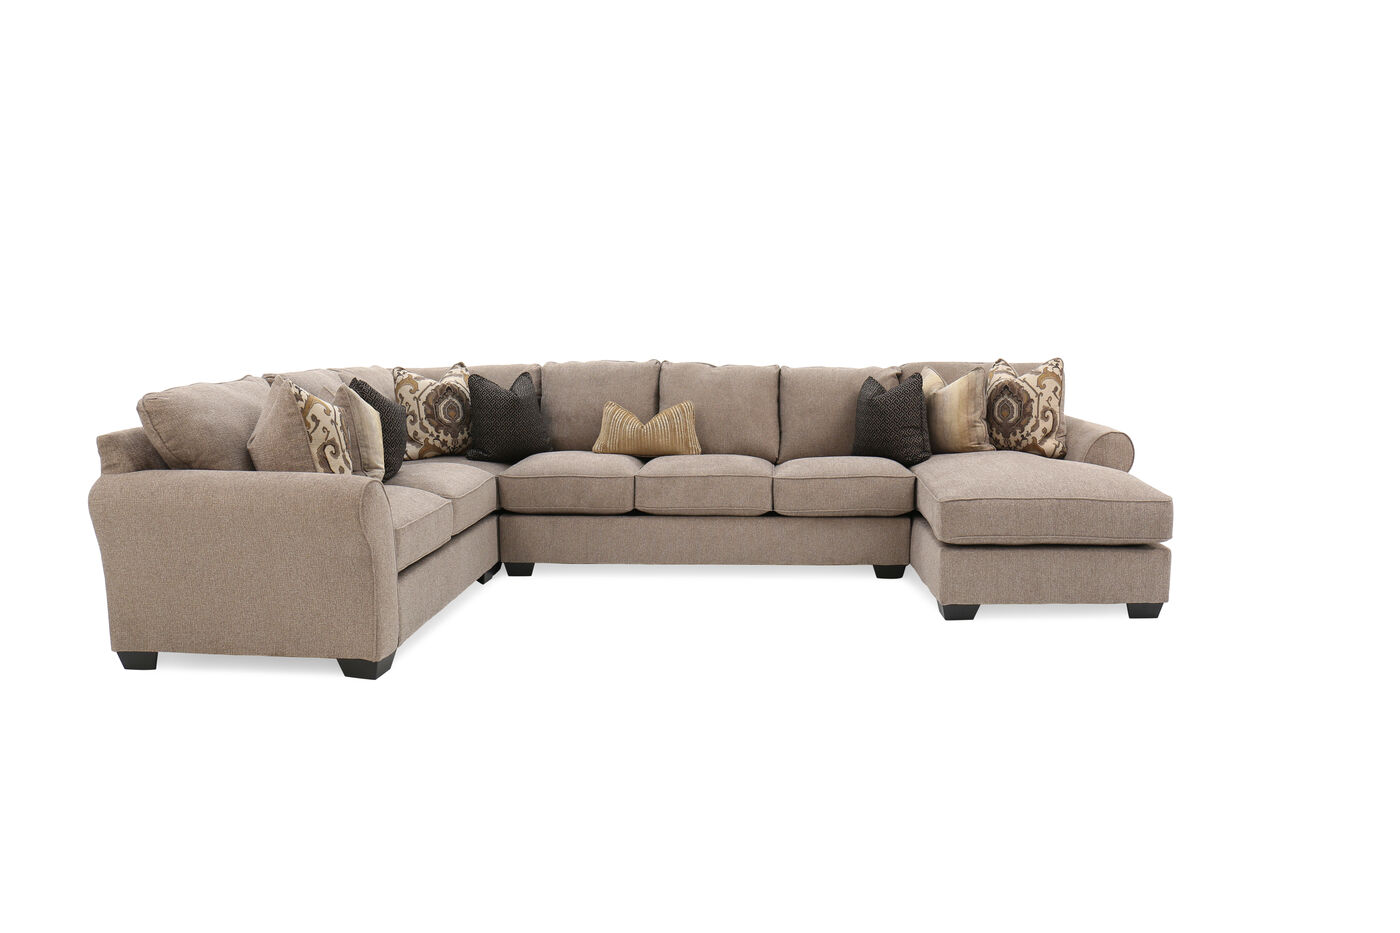 Four piece contemporary 157 sectional in beige mathis for 4 living furniture